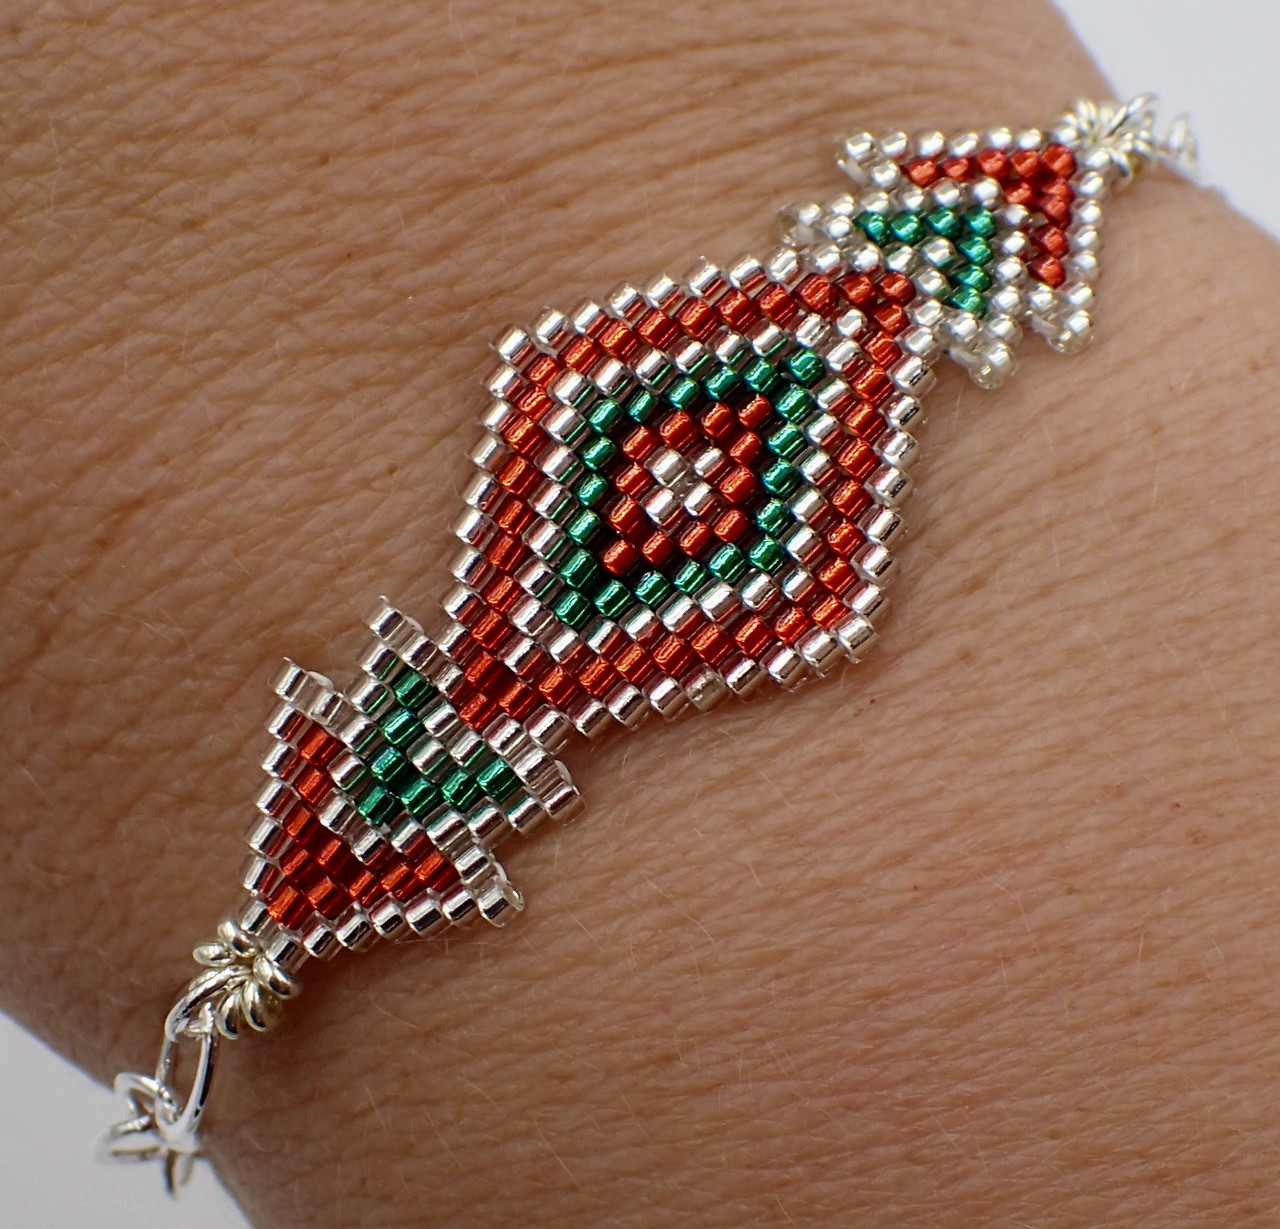 Brick Stitch Diamond Bracelet Instant Download Pattern